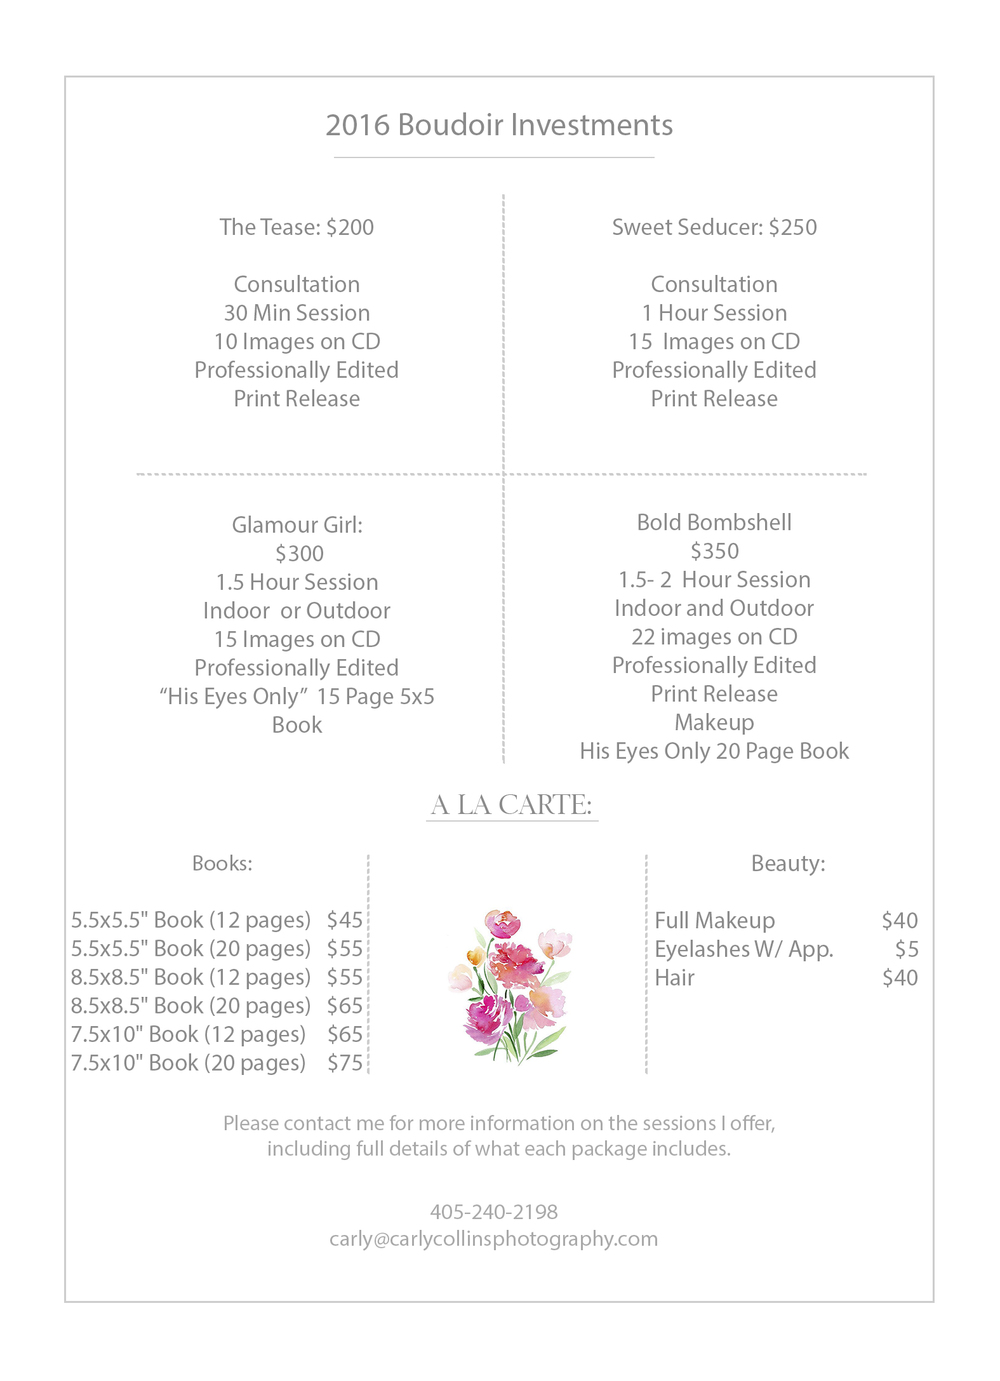 Investments carly collins photography boudoir price sheet publicscrutiny Choice Image